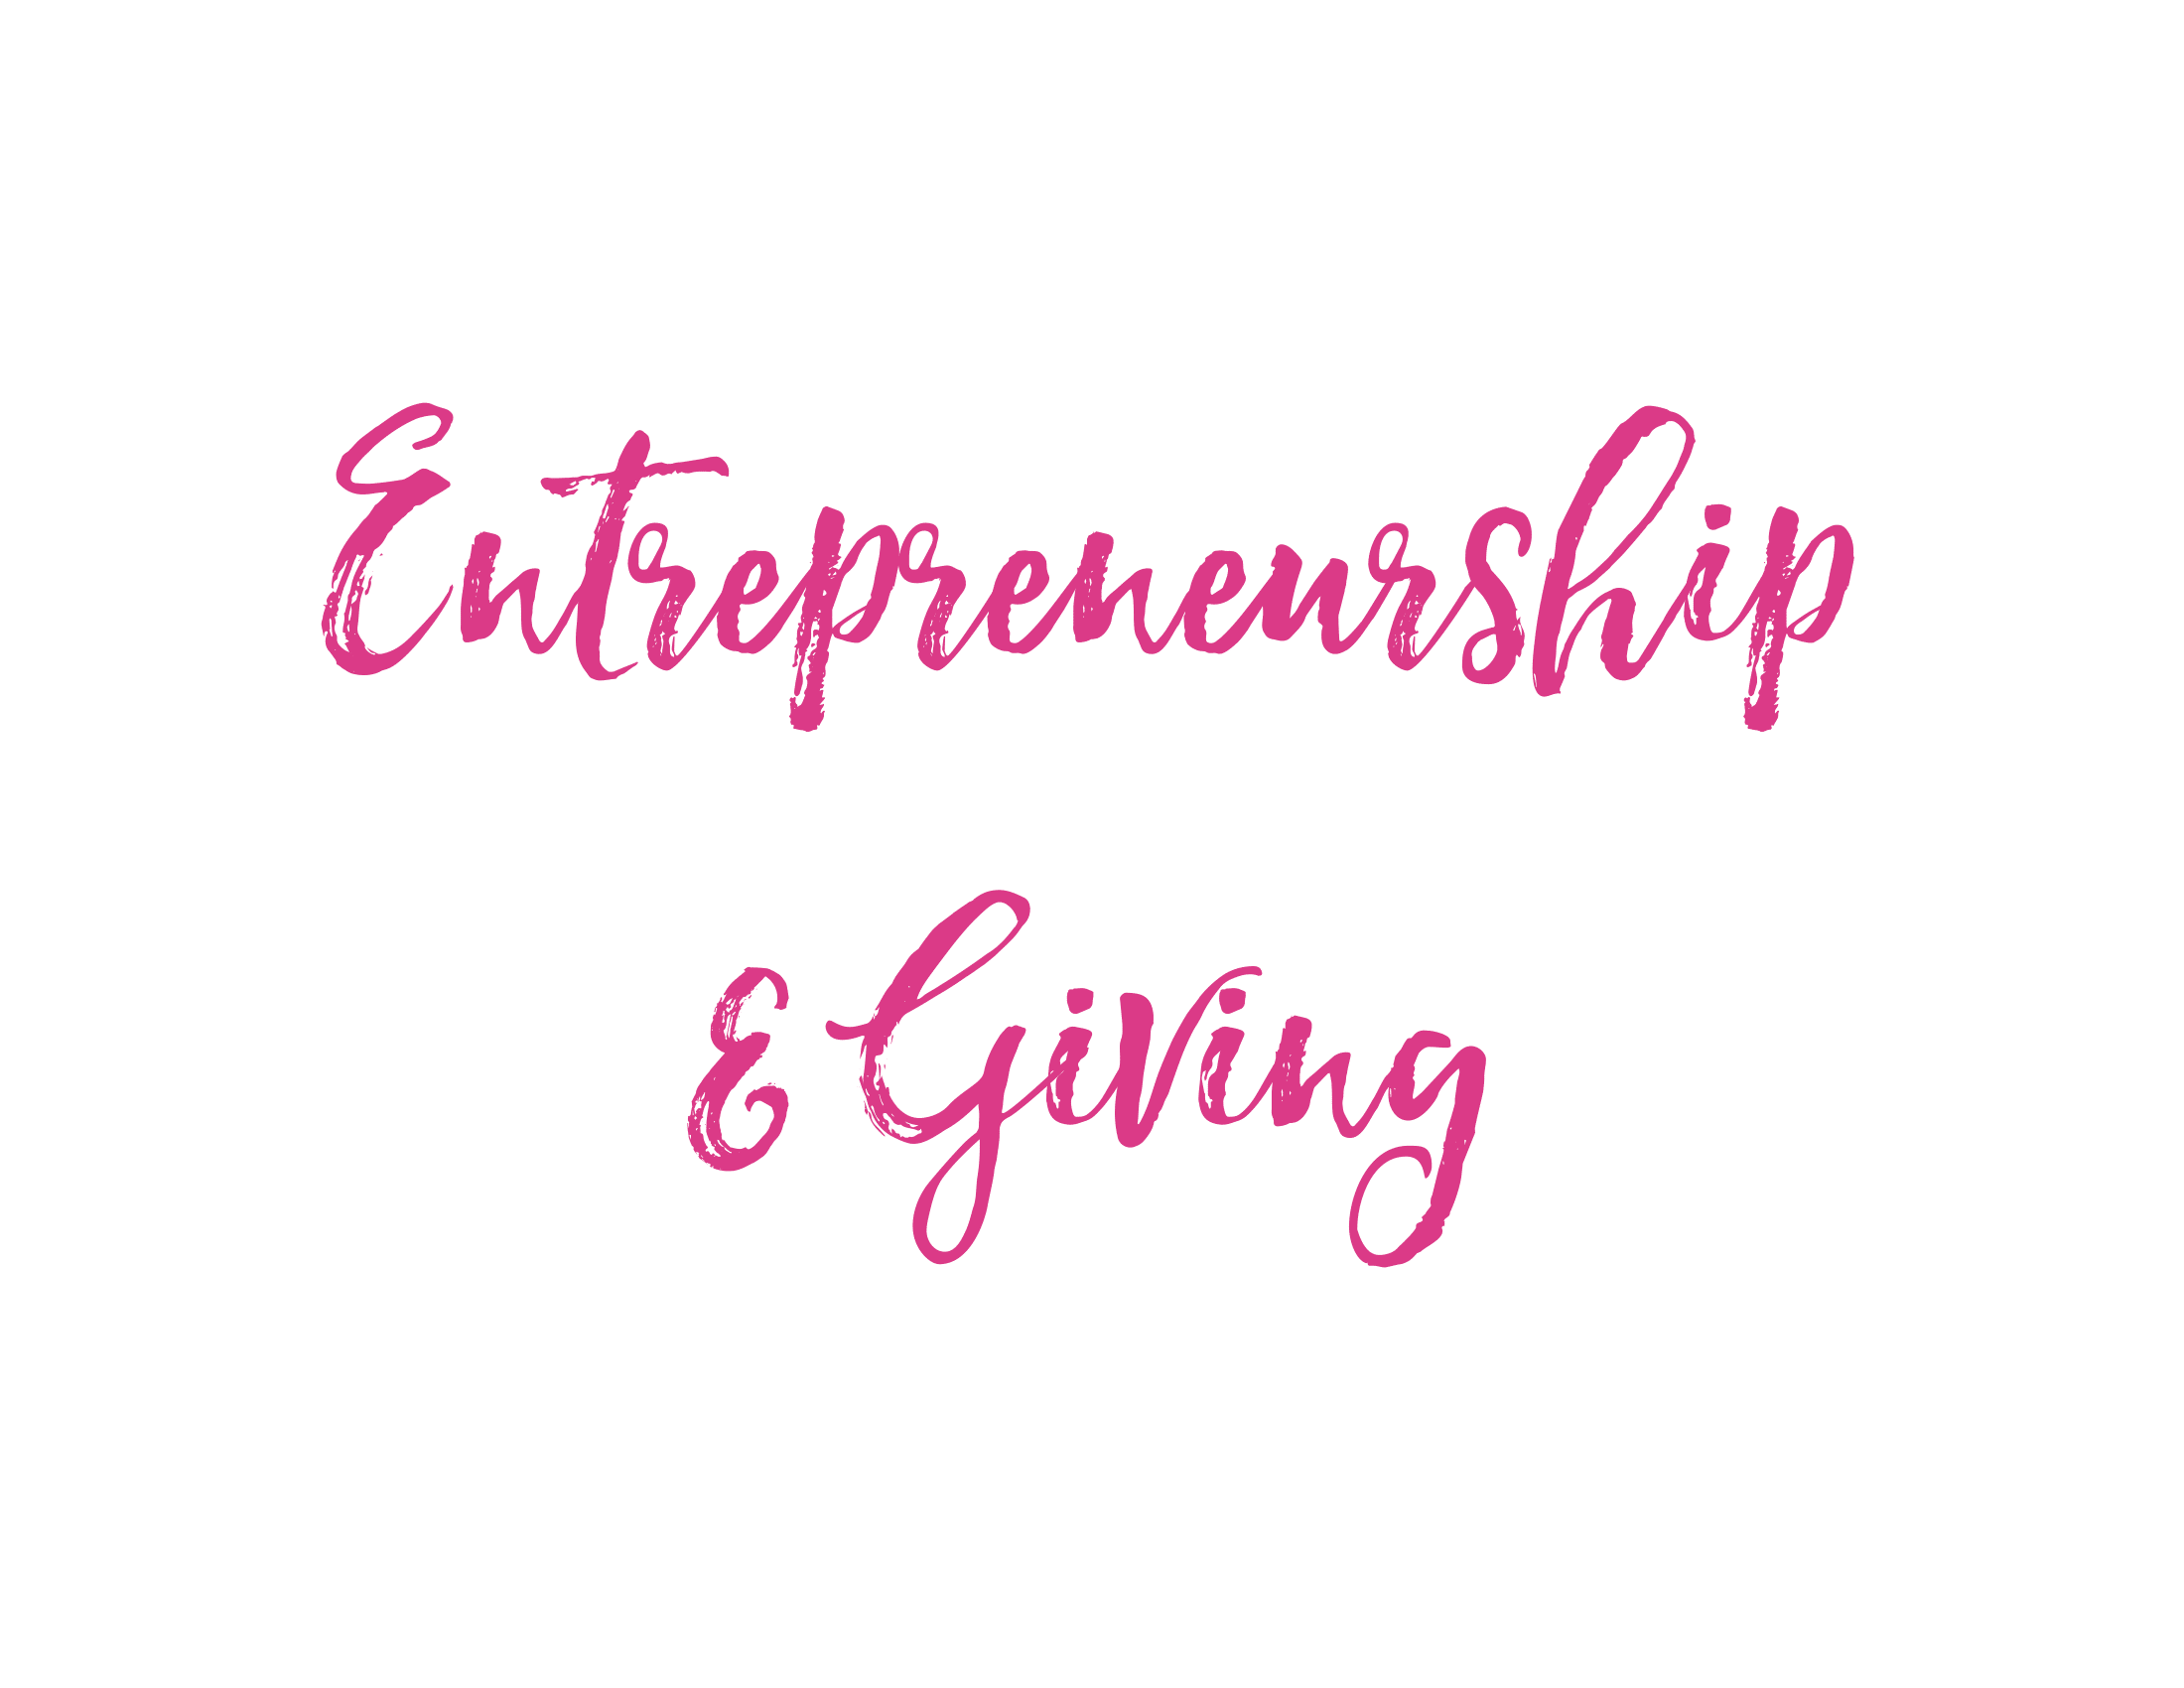 Build your own company or charity